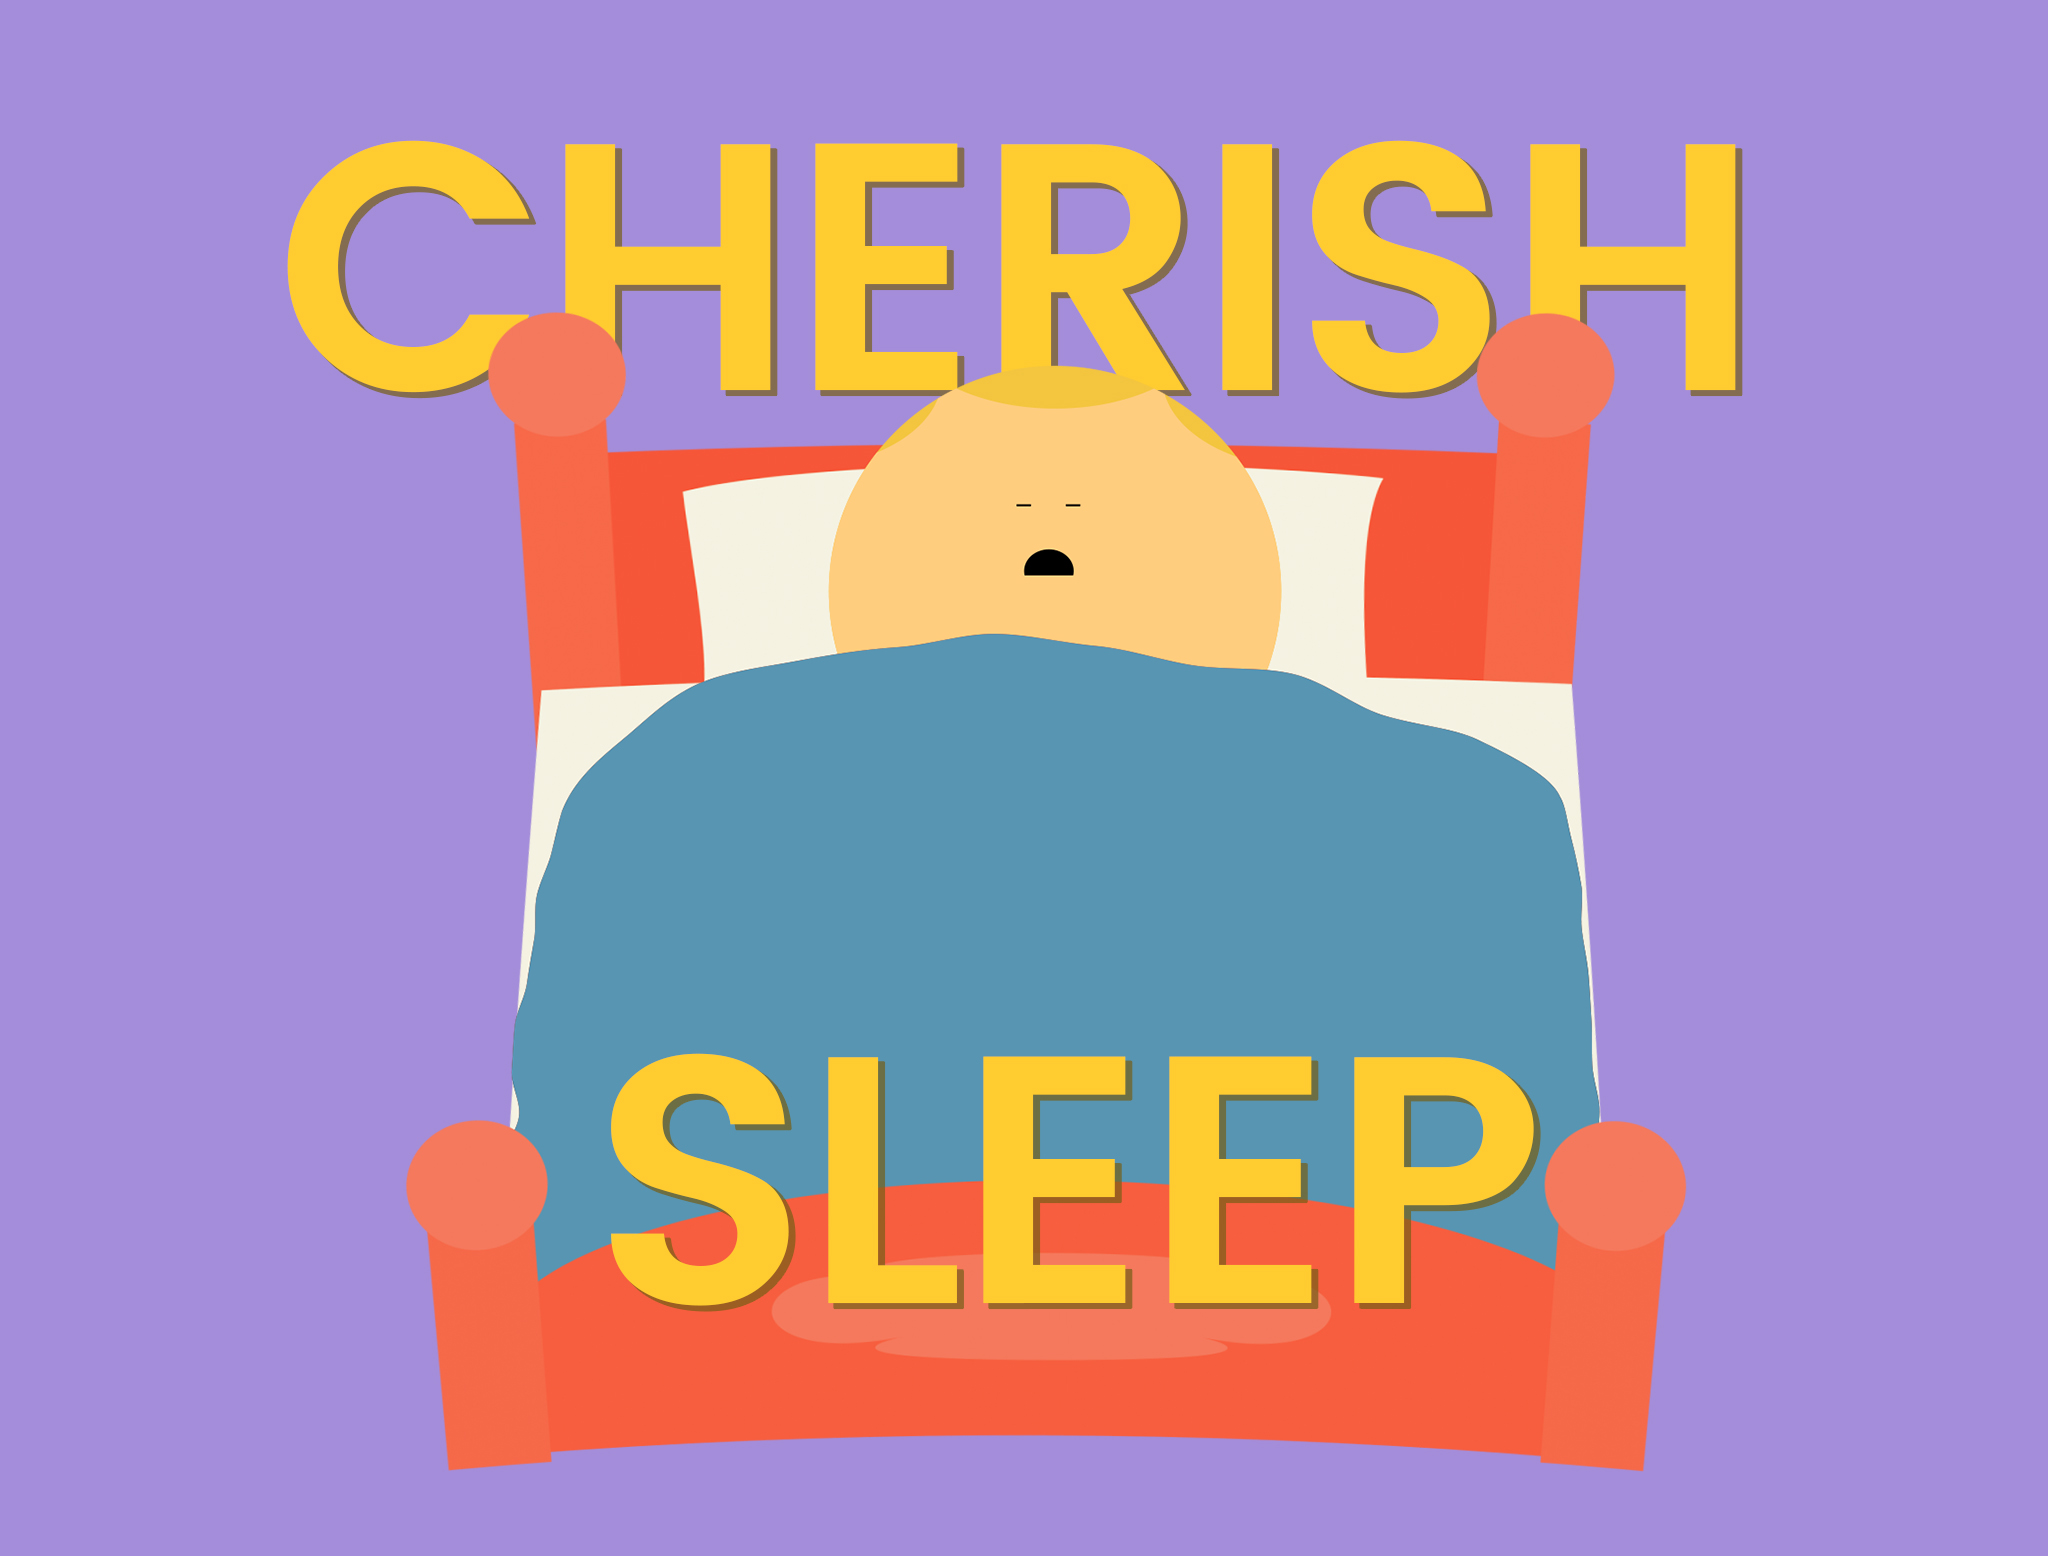 Words Cherish Sleep - Cartoon character in bed asleep